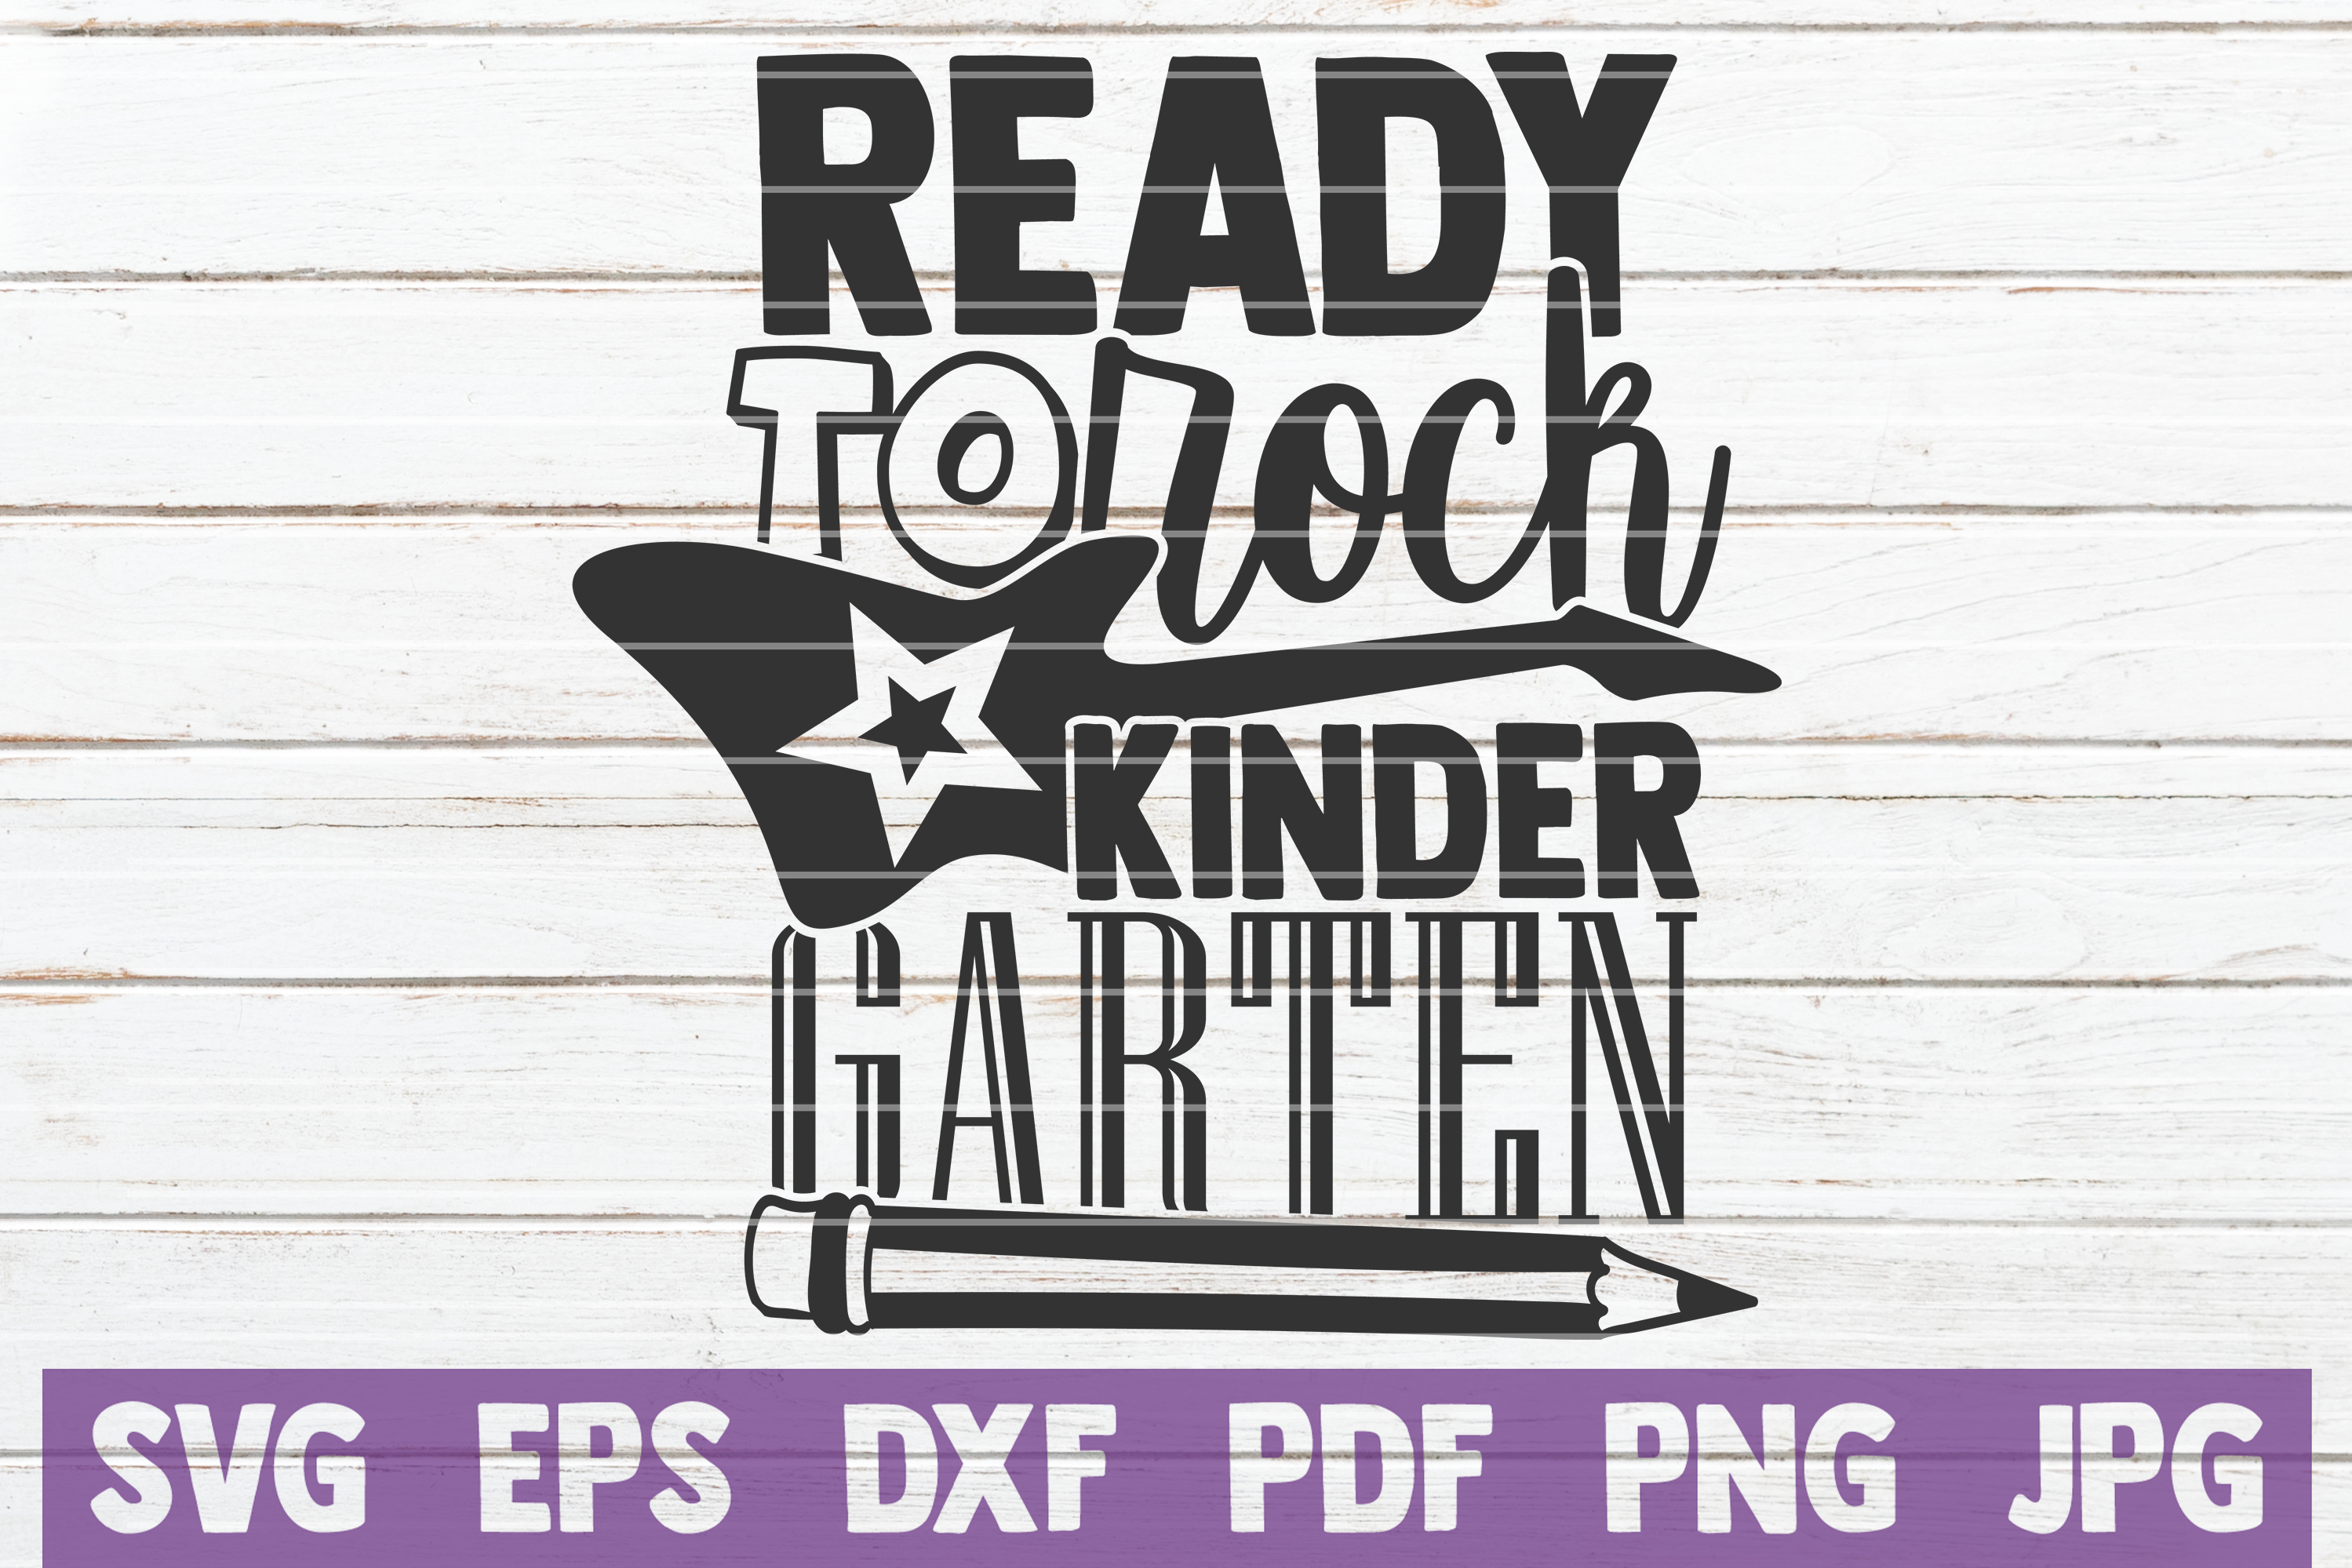 Download Free Ready To Rock Kindergarten Graphic By Mintymarshmallows for Cricut Explore, Silhouette and other cutting machines.